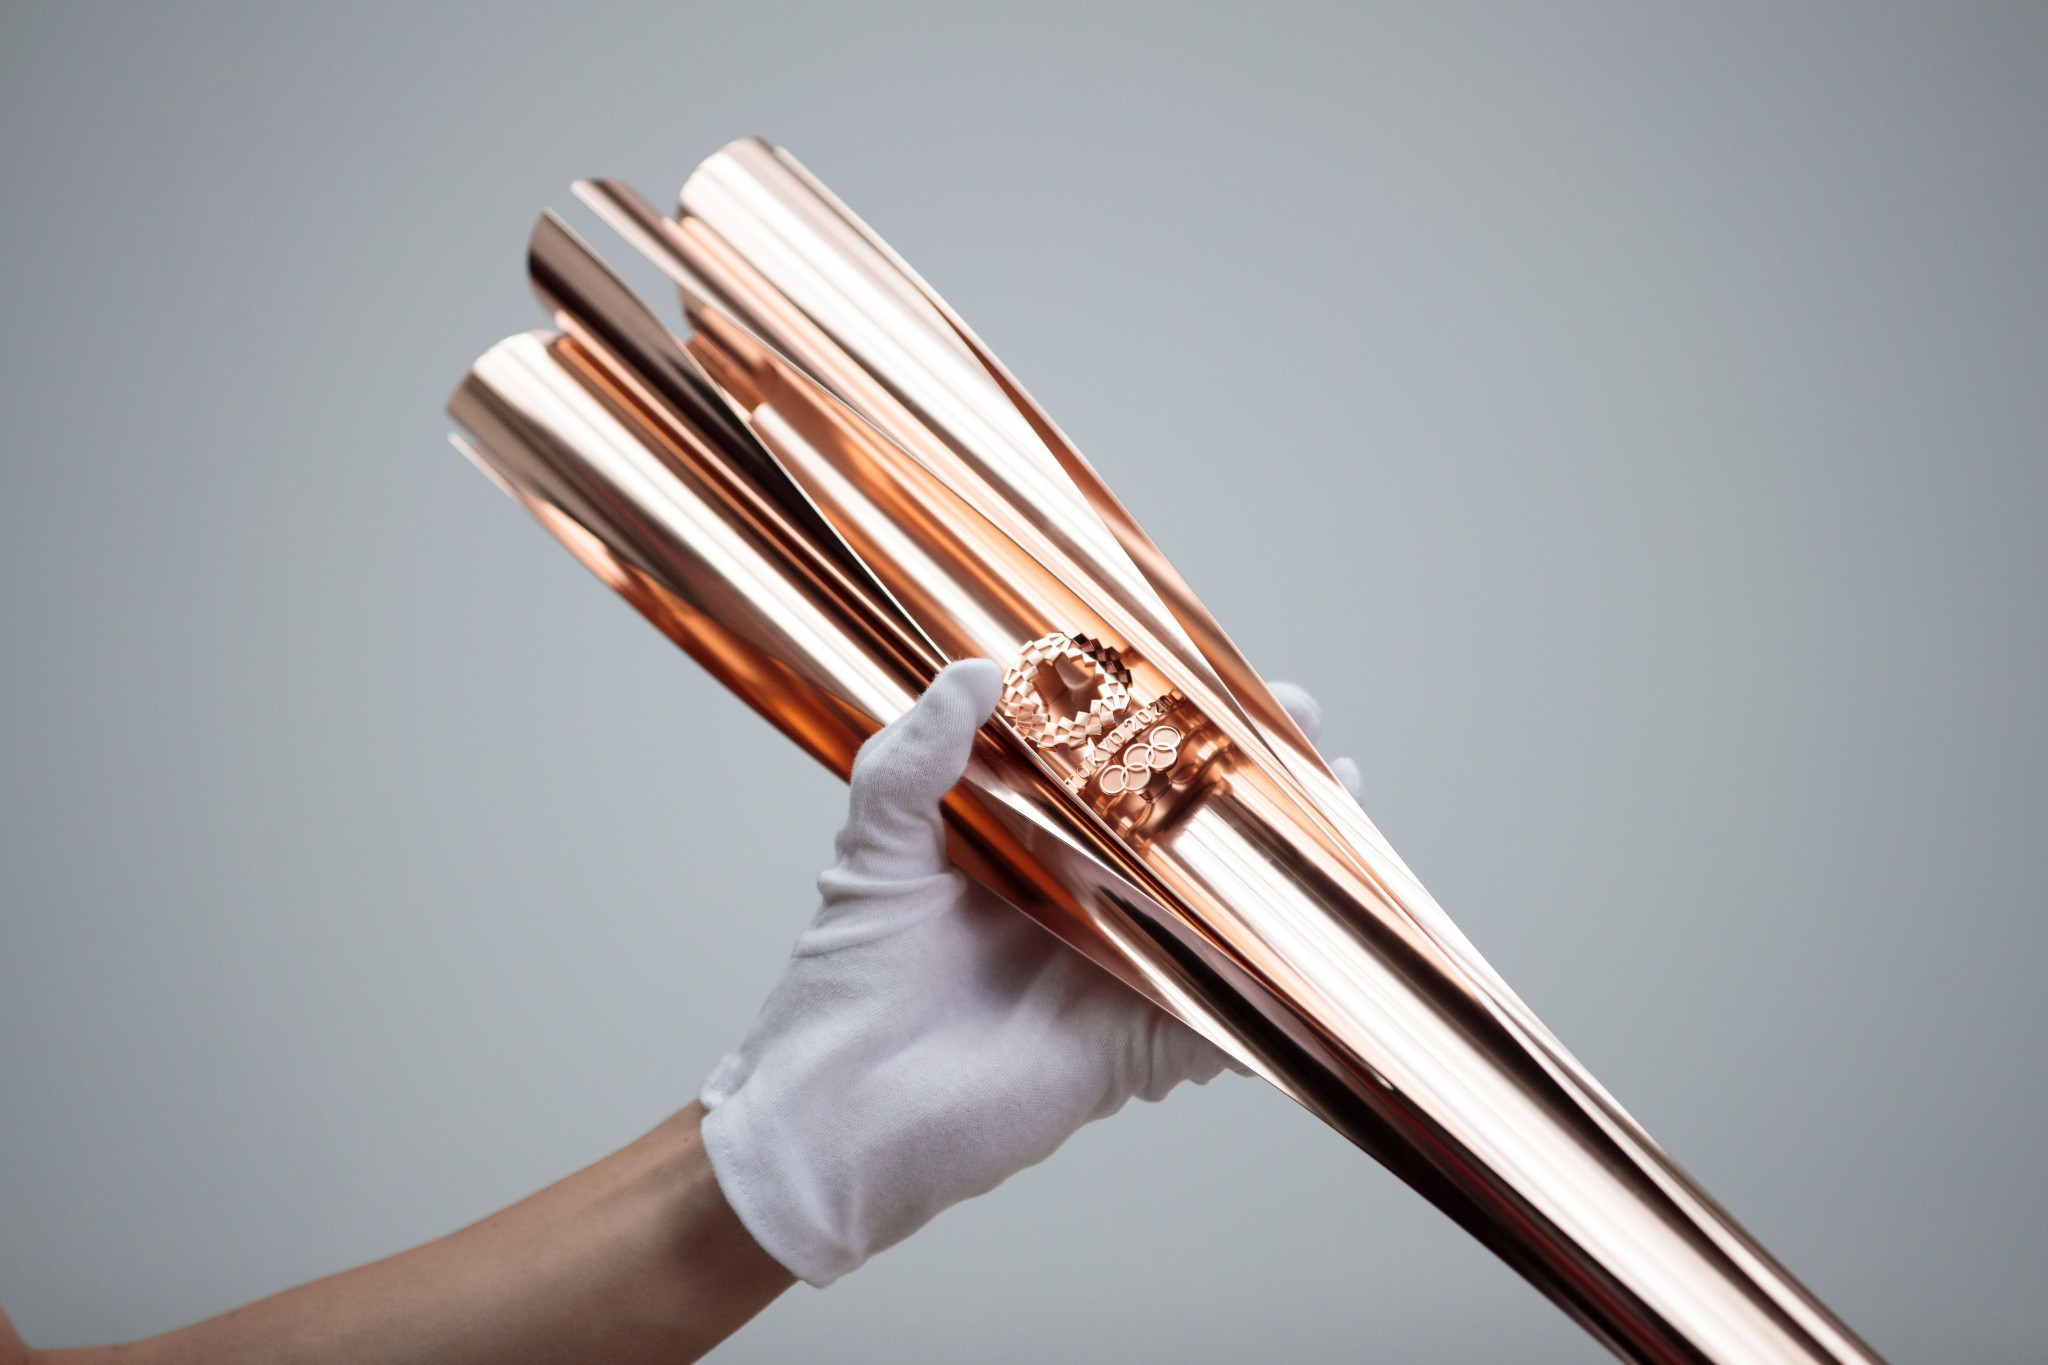 Designer reveals new details on Tokyo 2020 Olympic Torch